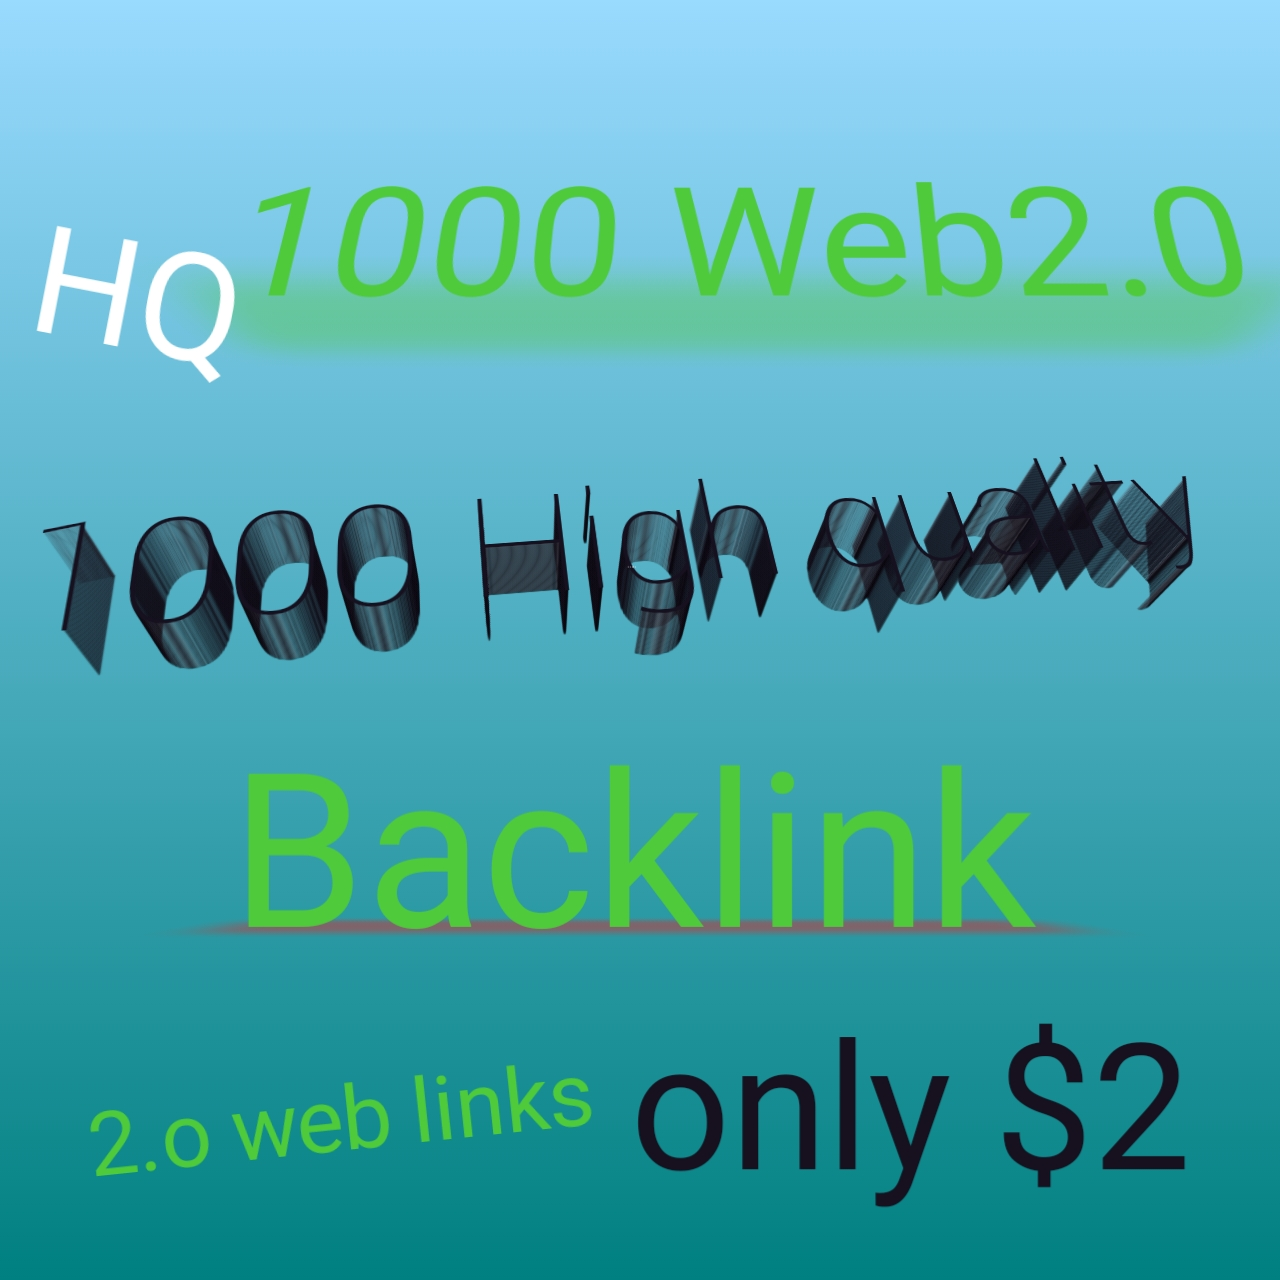 I will build 1,000 web 2.0 high quality backlinks for your keywords/links